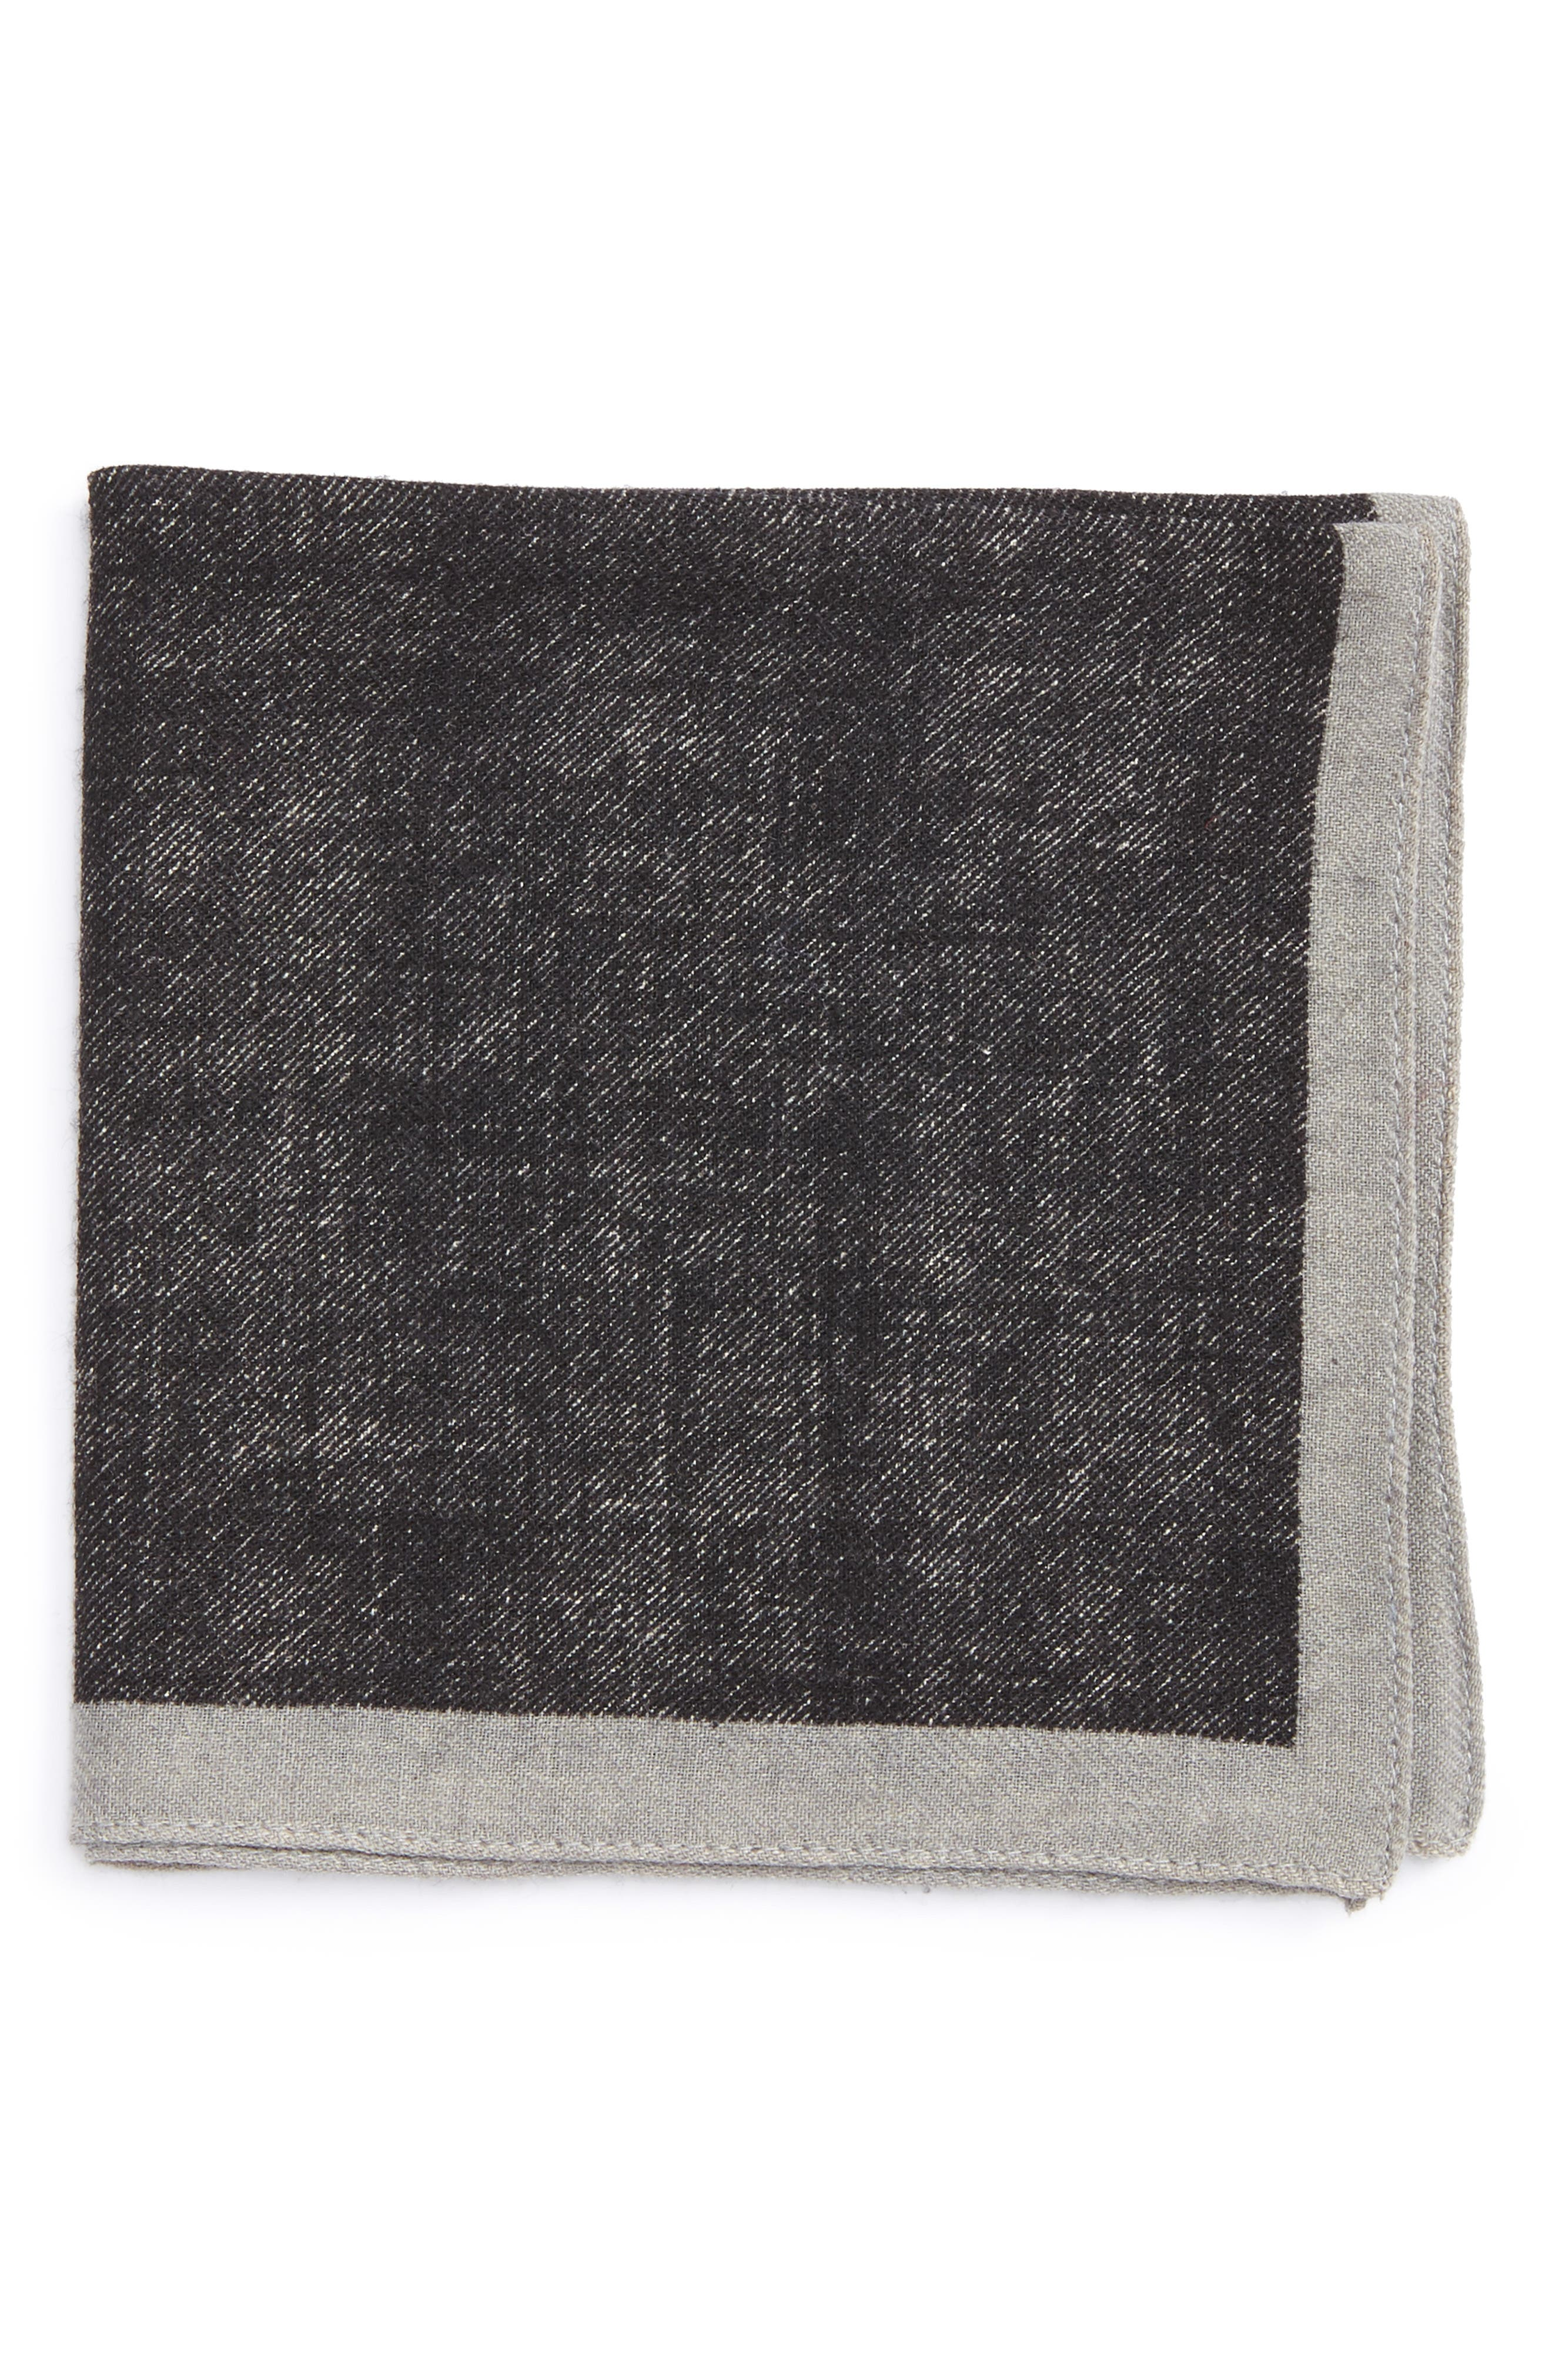 BOSS Solid Wool Pocket Square